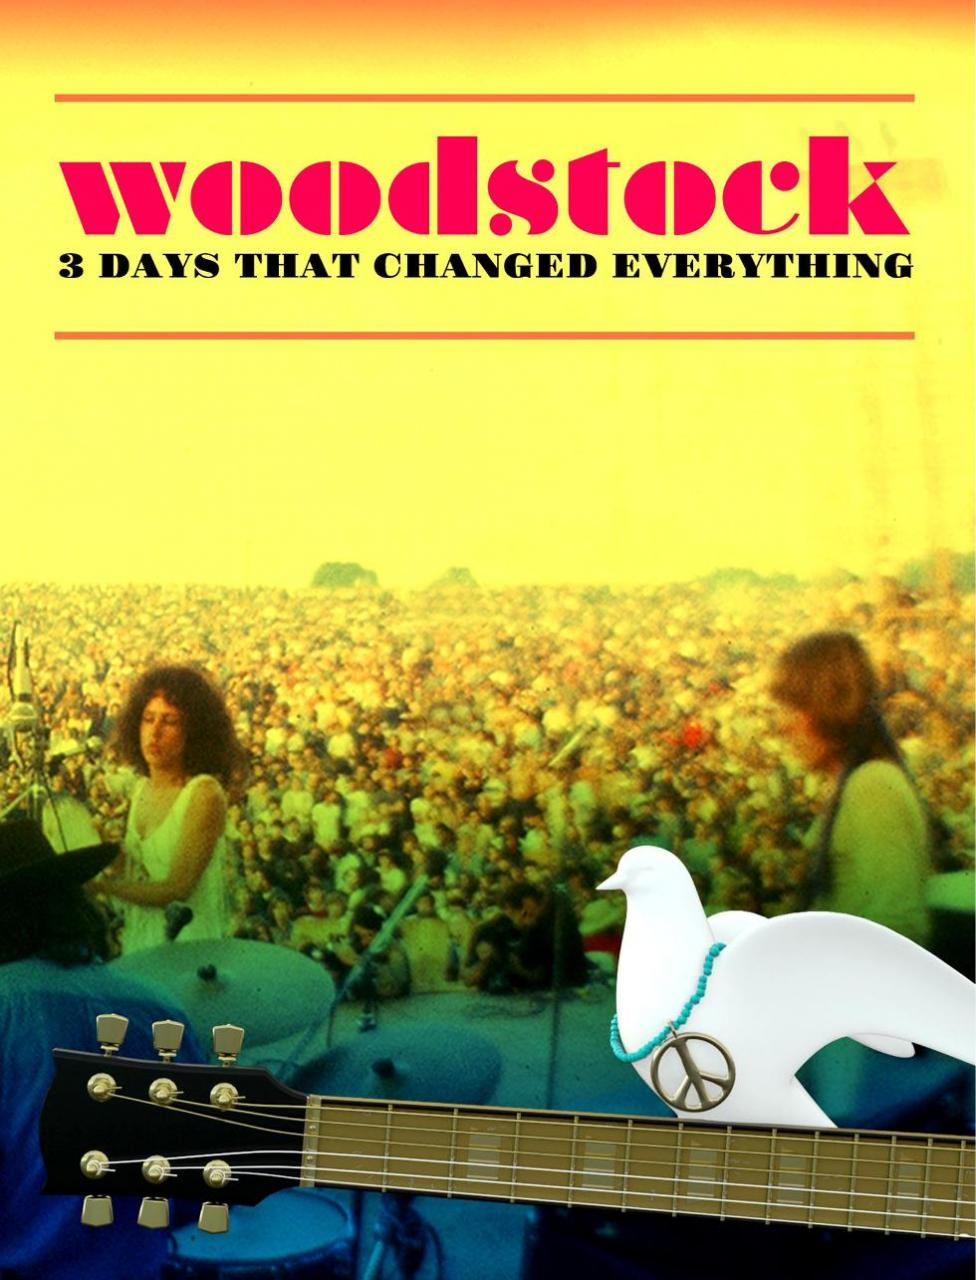 Woodstock 3 days that changed the world